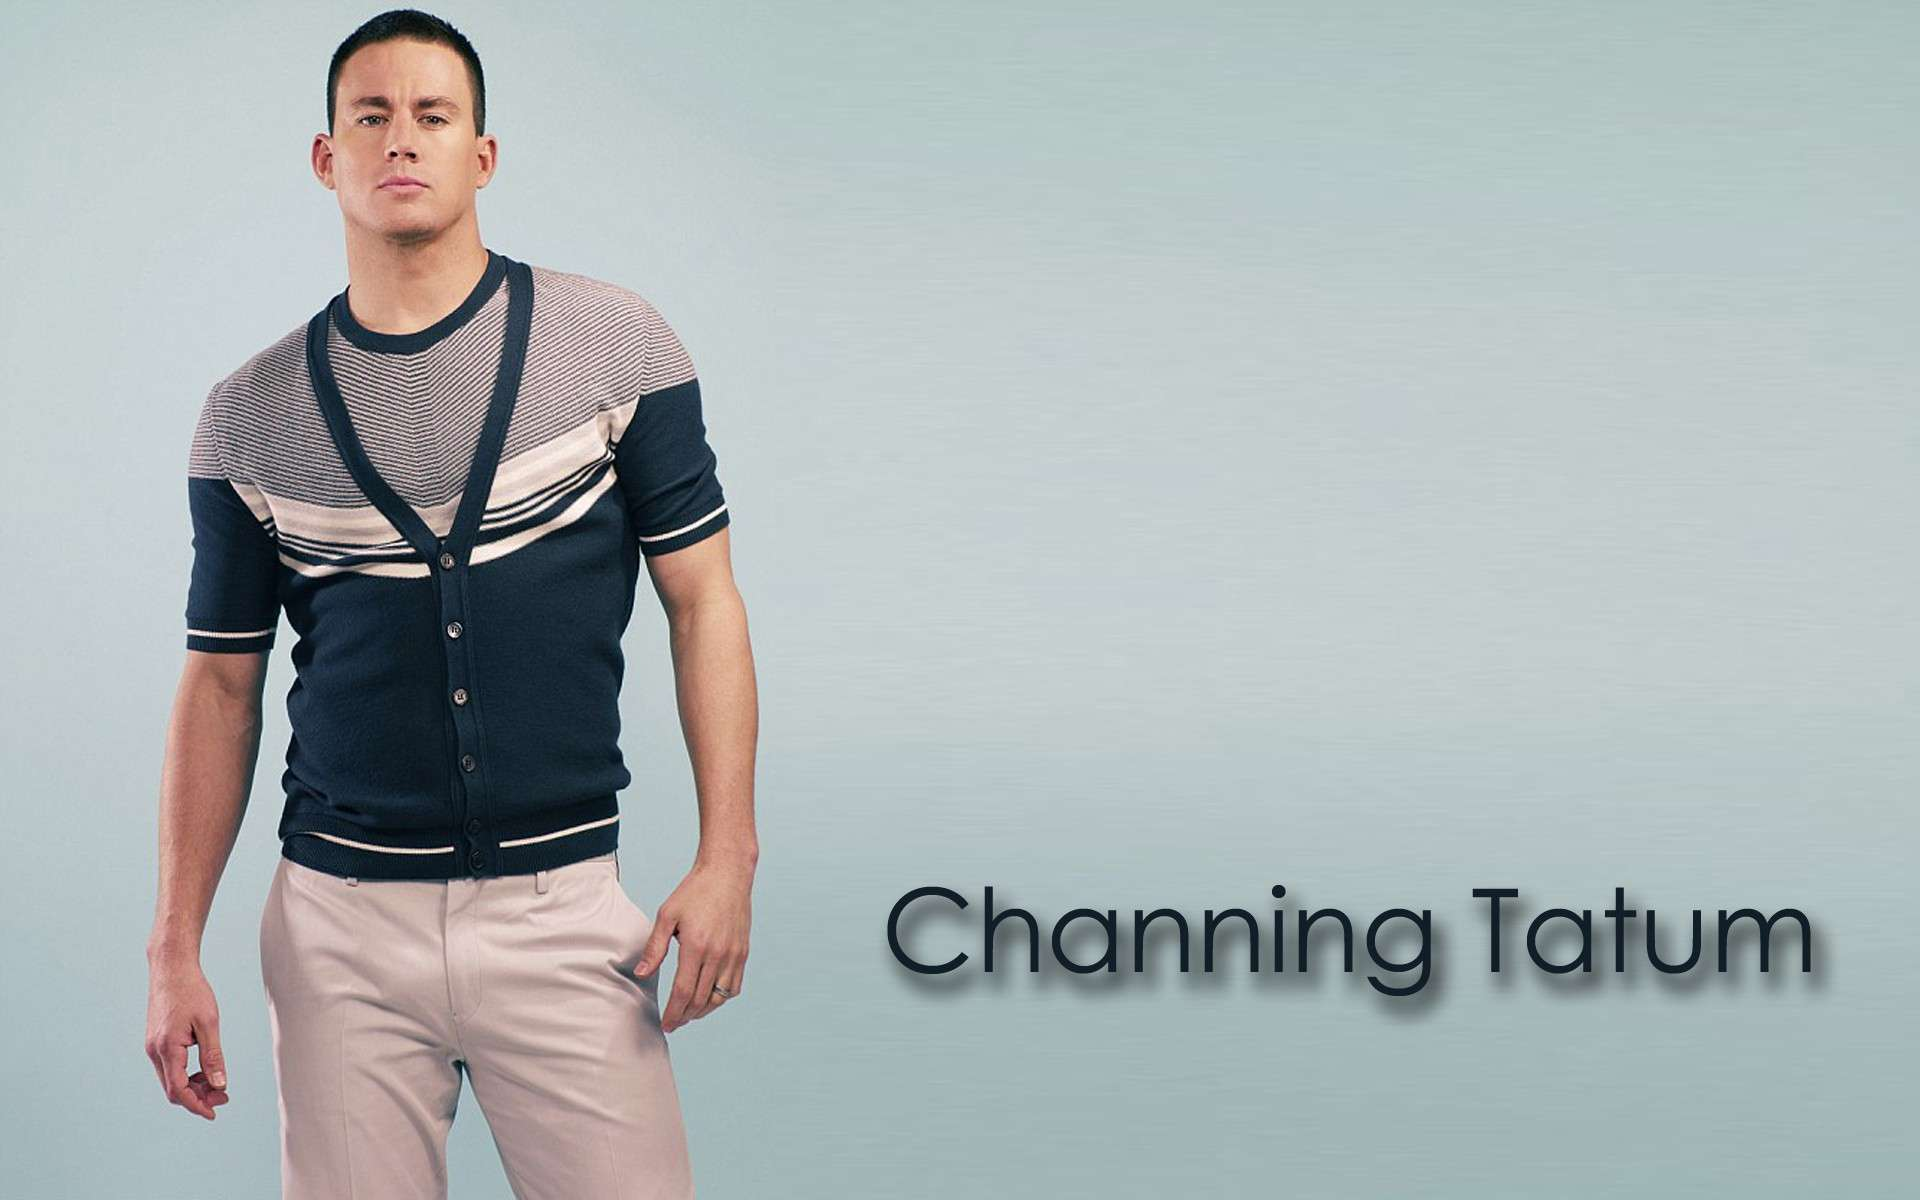 Channing Tatum HD